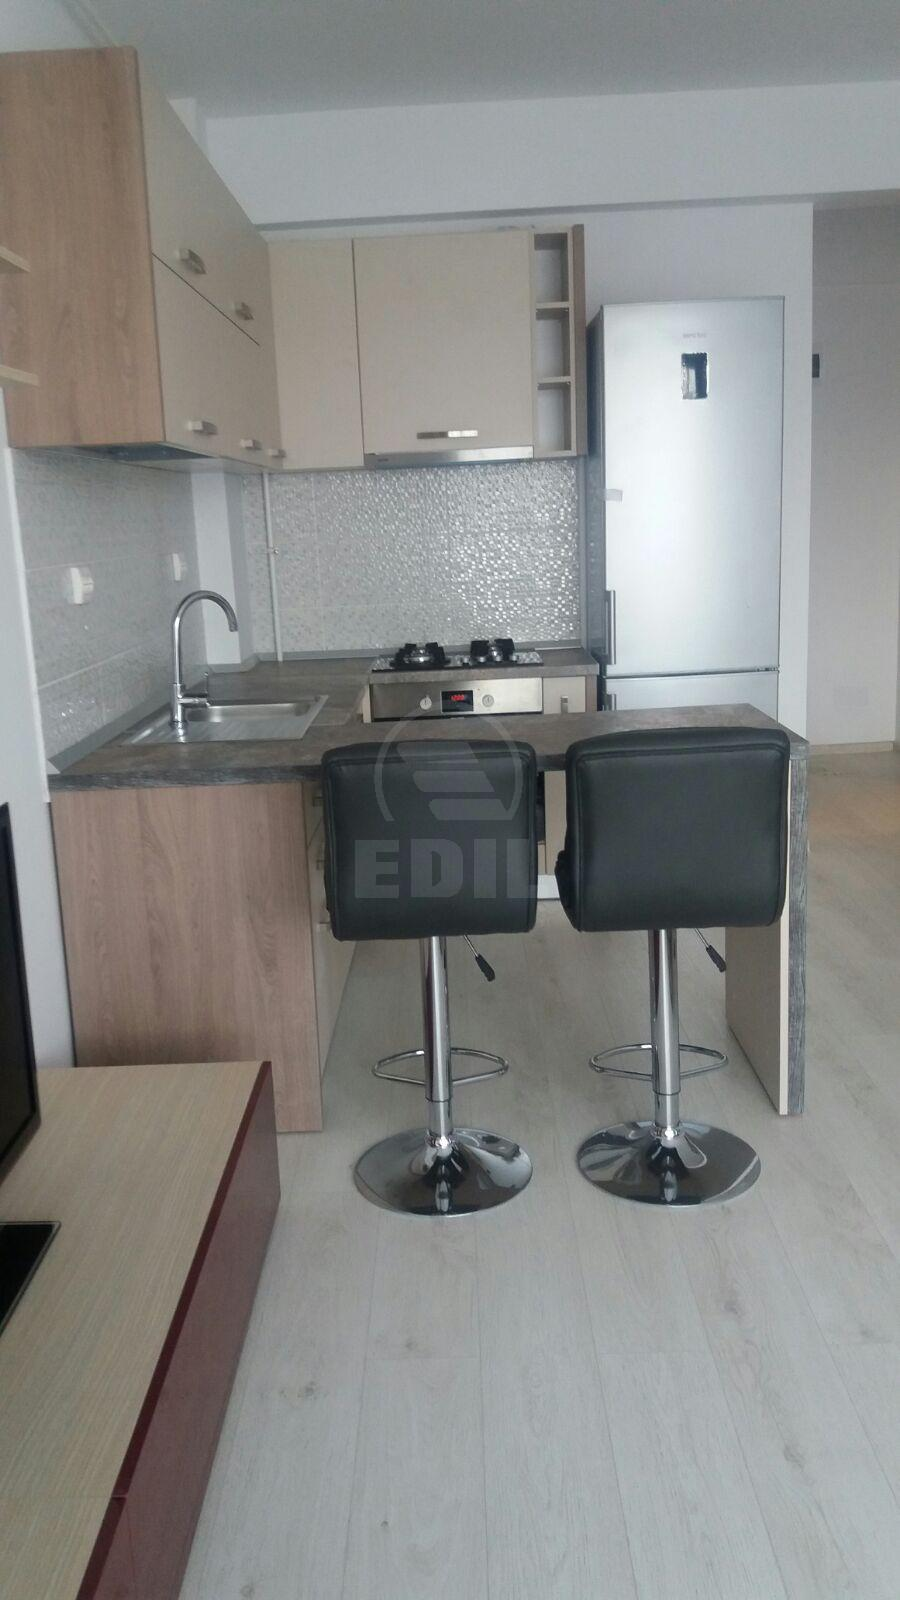 Apartment for rent 2 rooms, APCJ279074-2